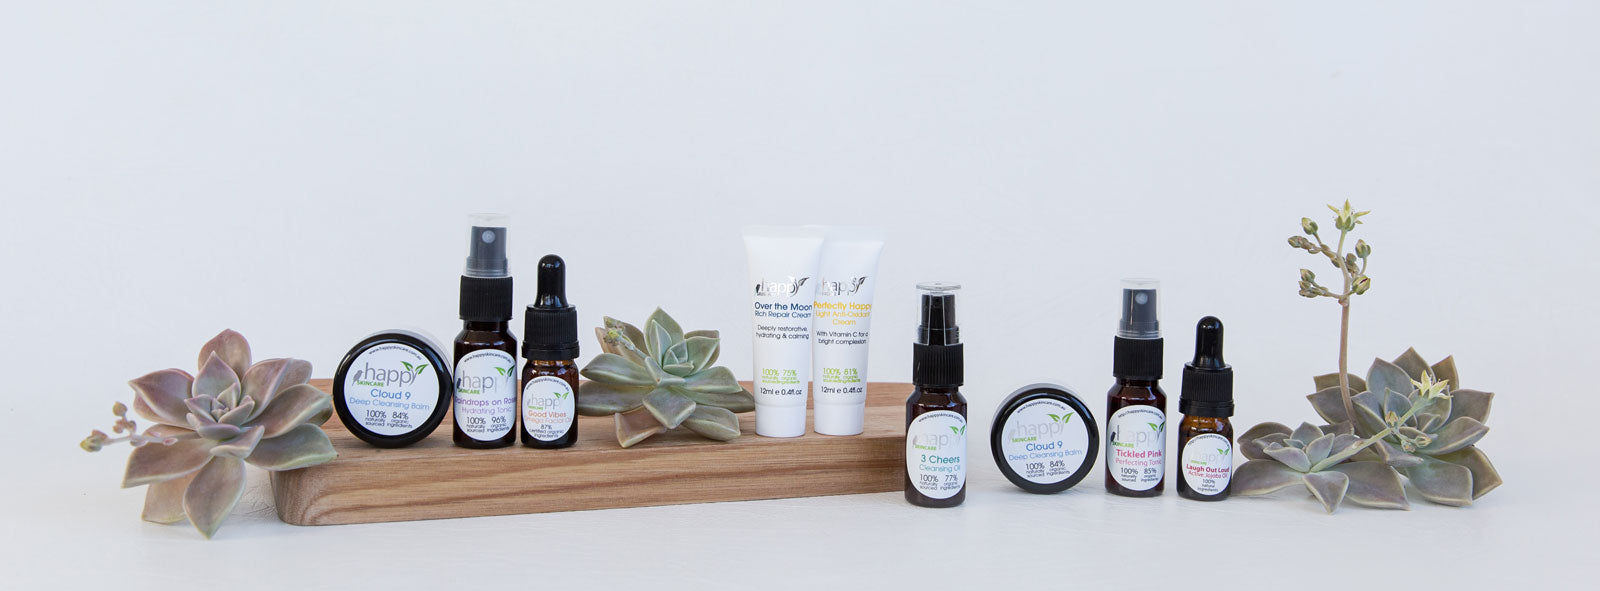 The Happy Skincare super-sized sample pack in all its glory